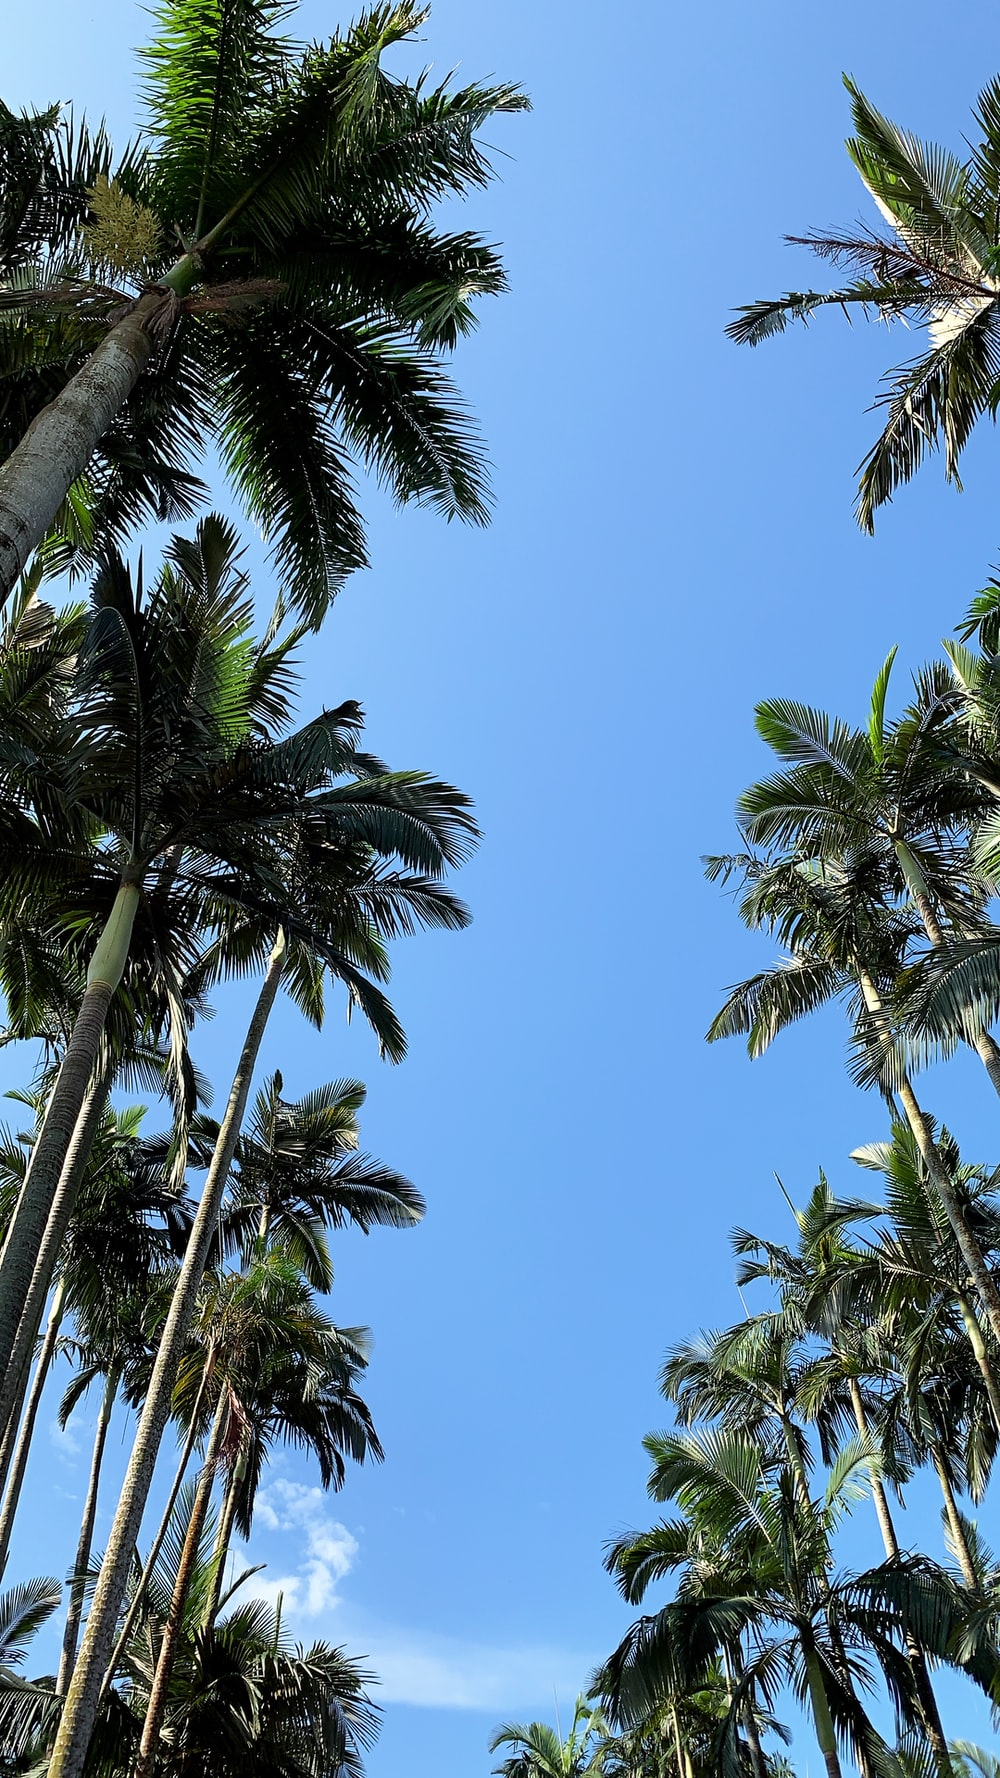 green coconut trees under blue sky in low angle photography